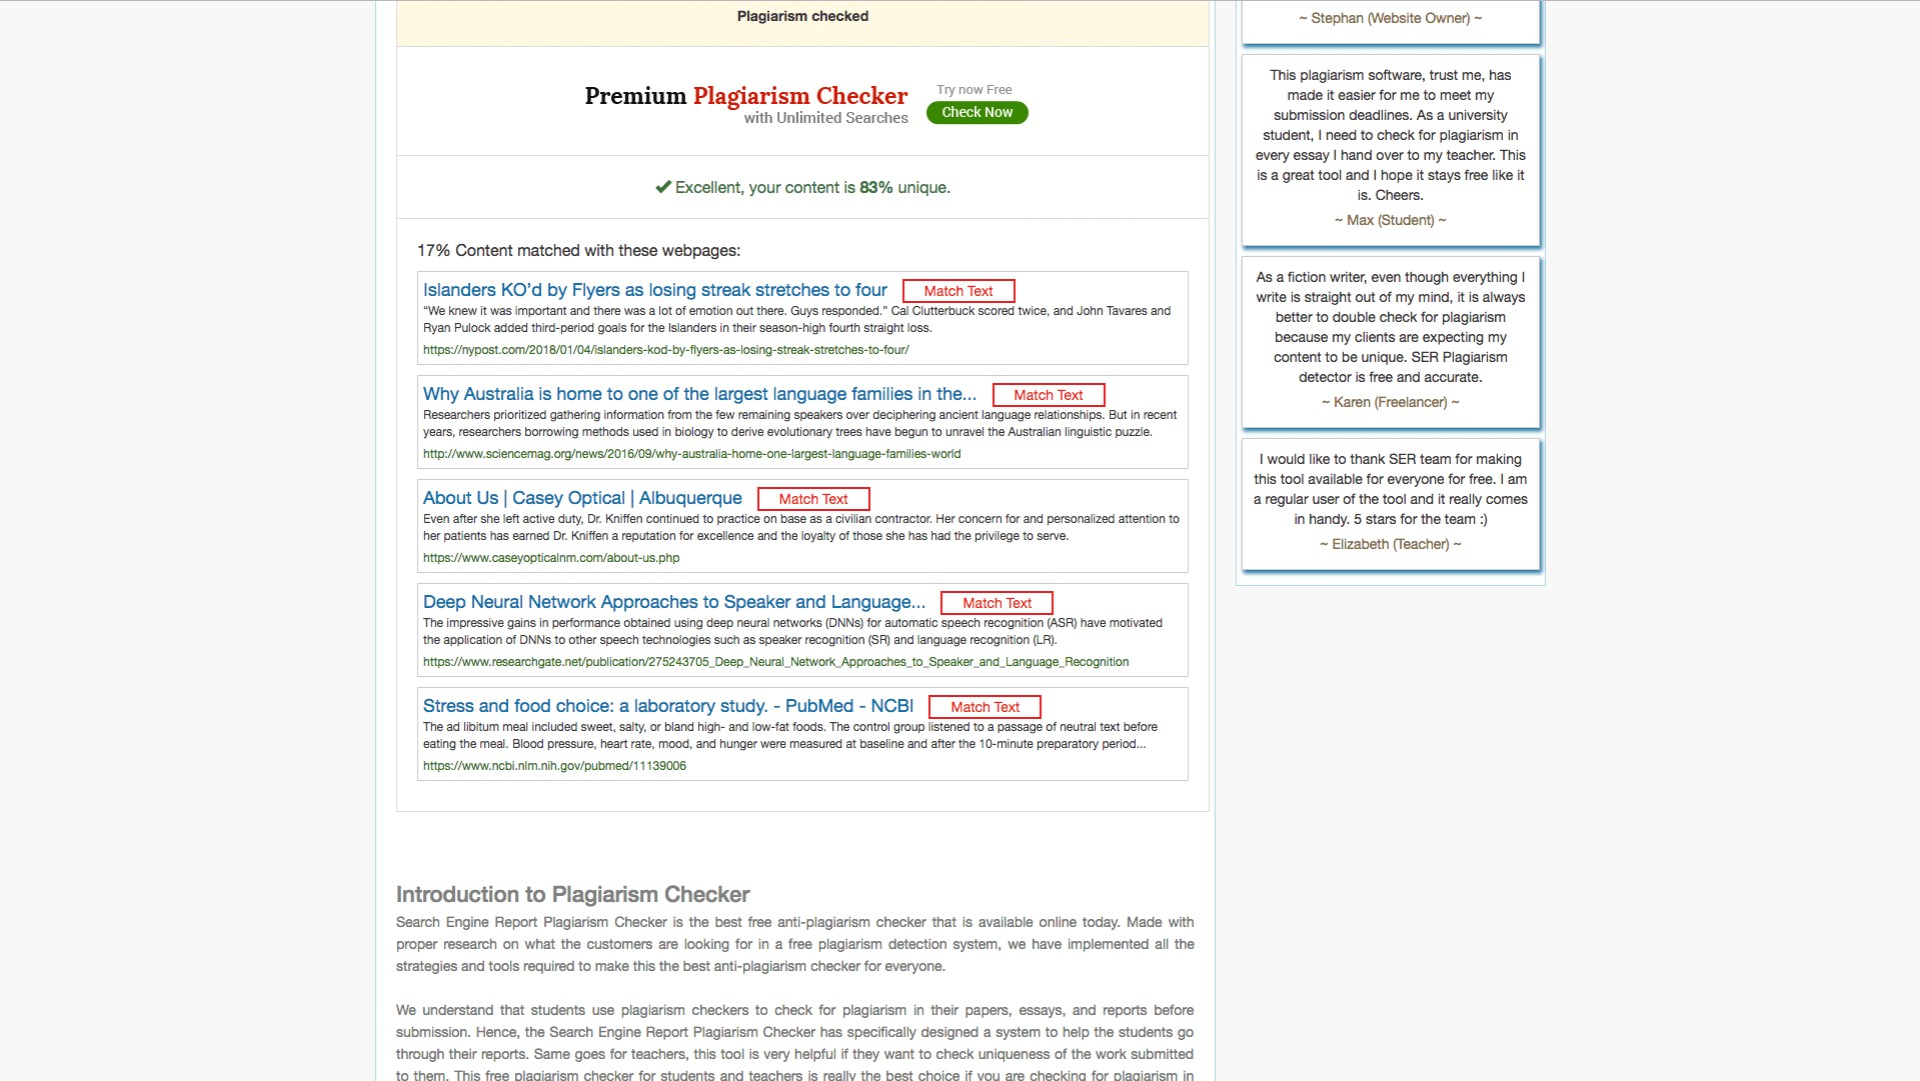 002 Searchenginereports Best Free Online Plagiarism Checker For Researchs Unusual Research Papers 1920